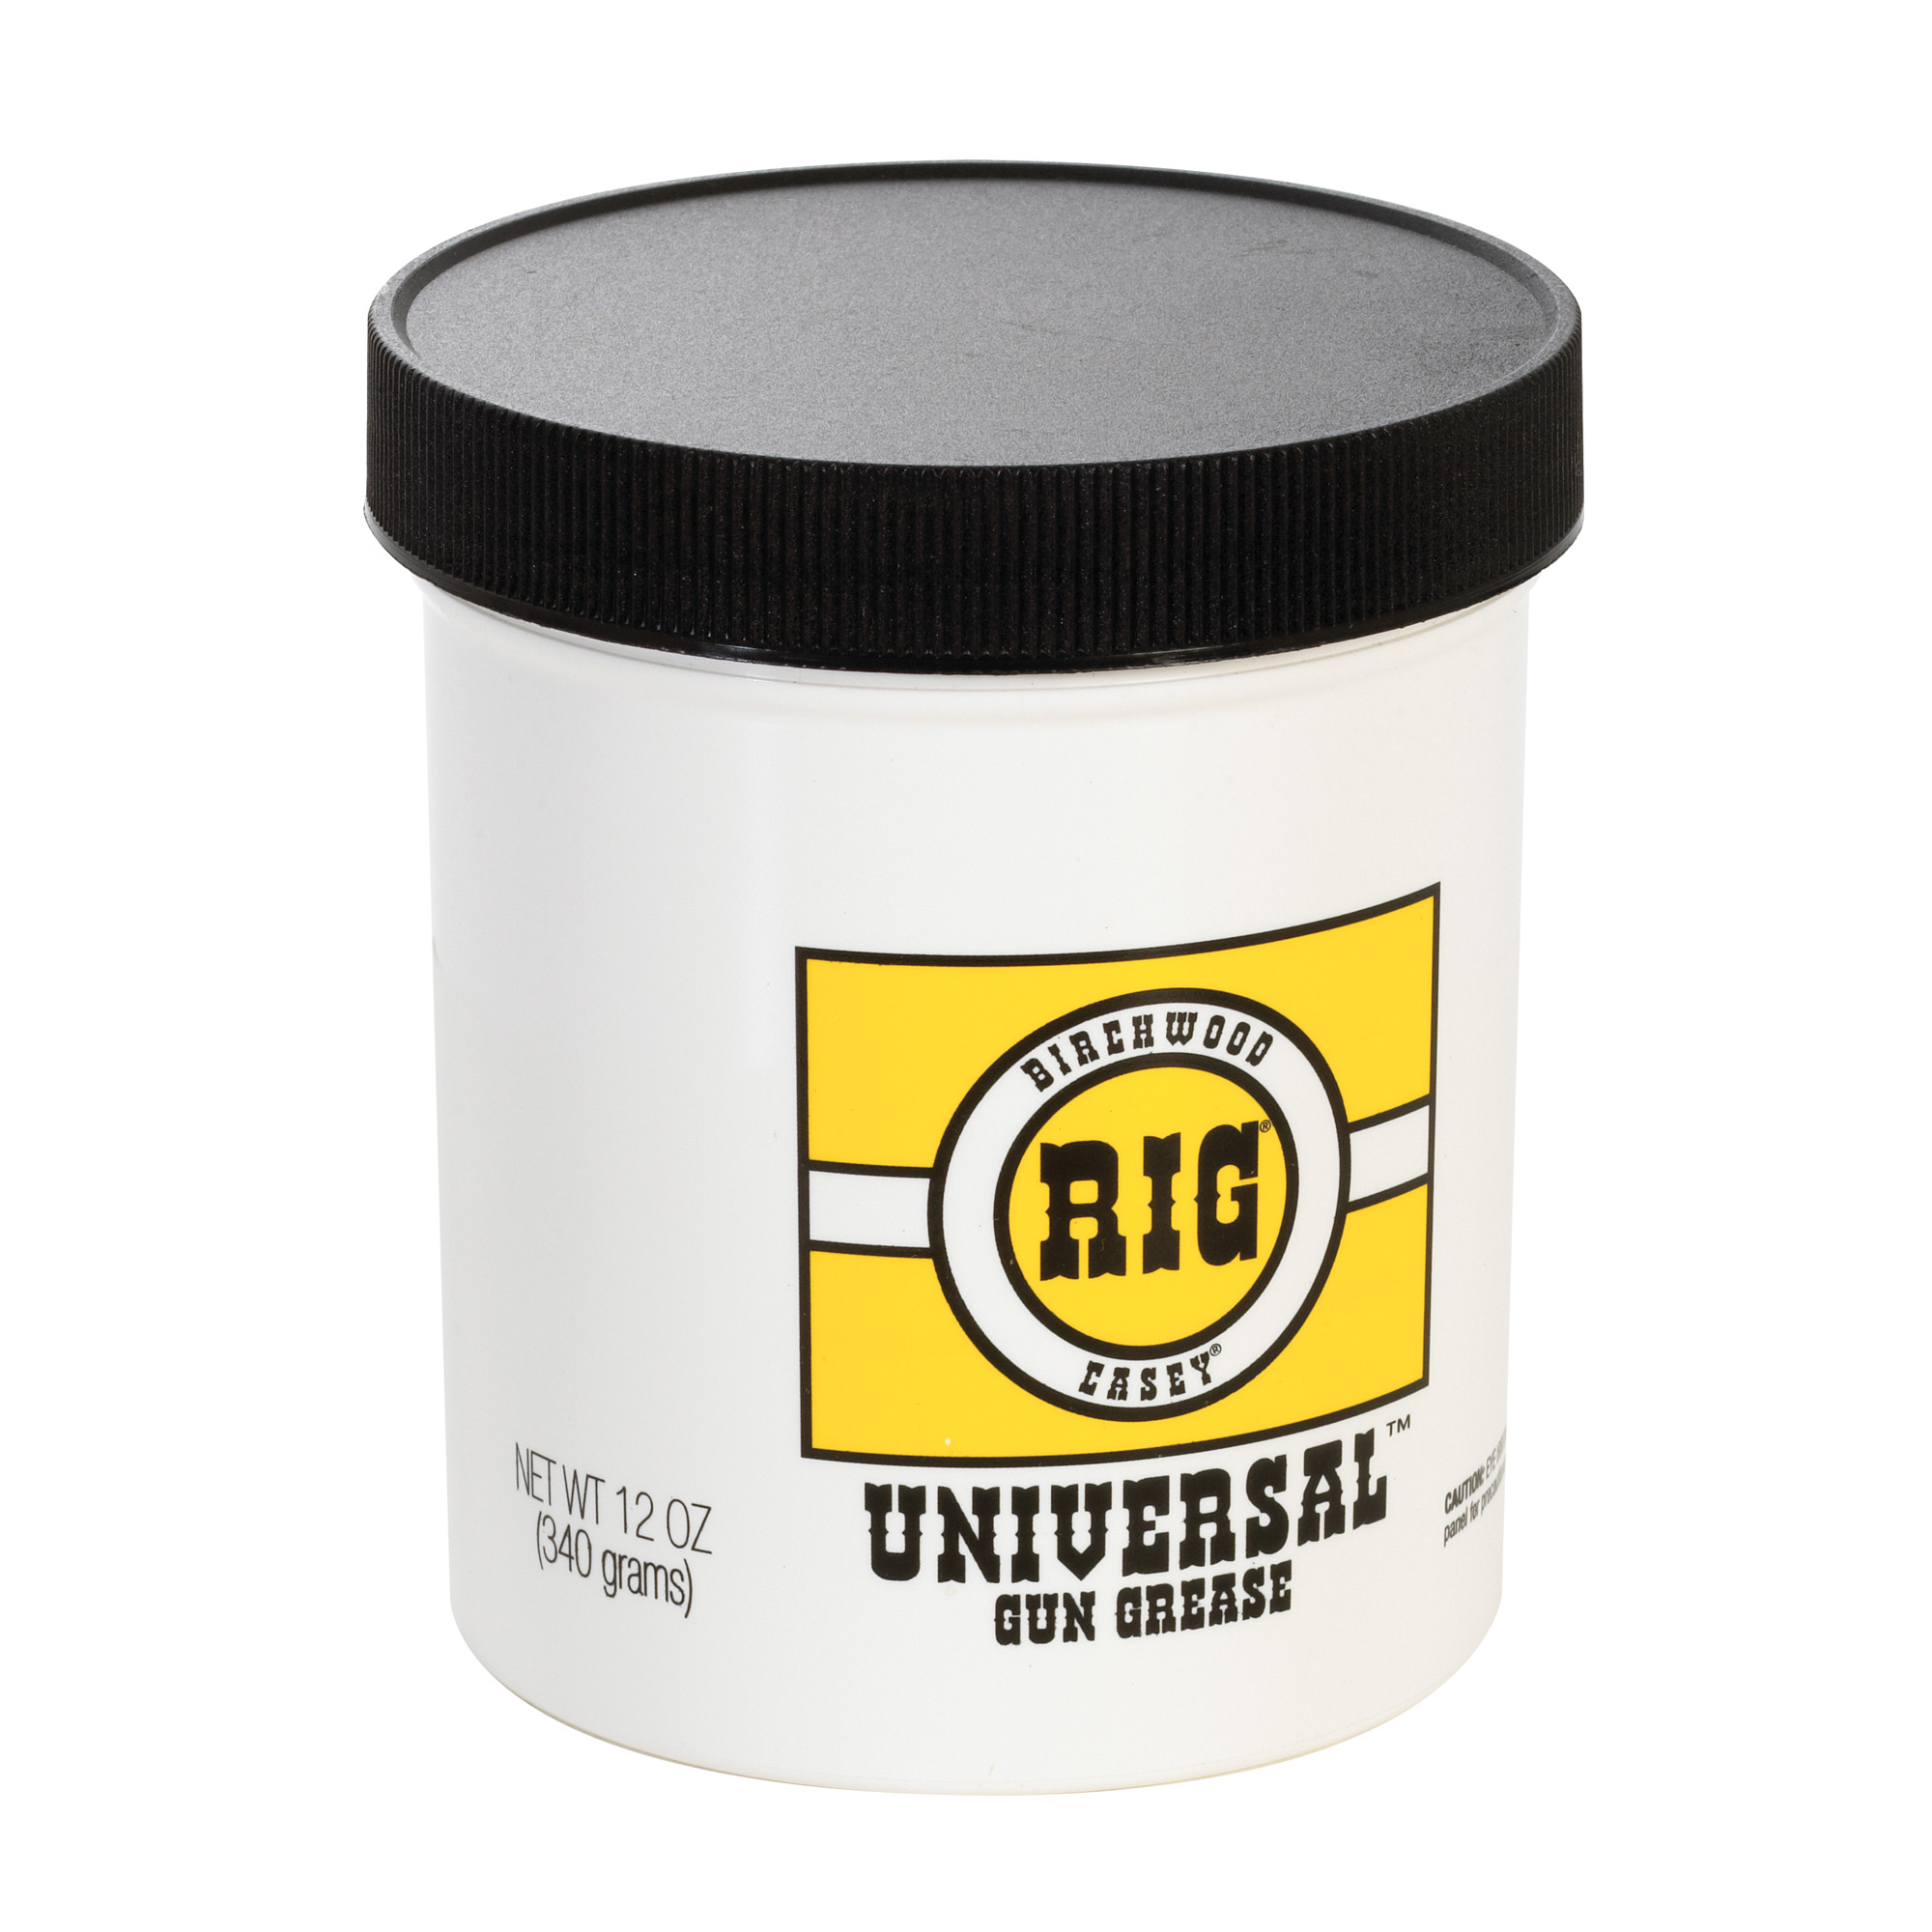 """One thorough application of RIG Universal Gun Grease inside and out will protect your rifle"""" handgun"""" shotgun or muzzleloader against rust and corrosion. RIG Universal Gun Grease is a superior firearm lubricant and preservative."""